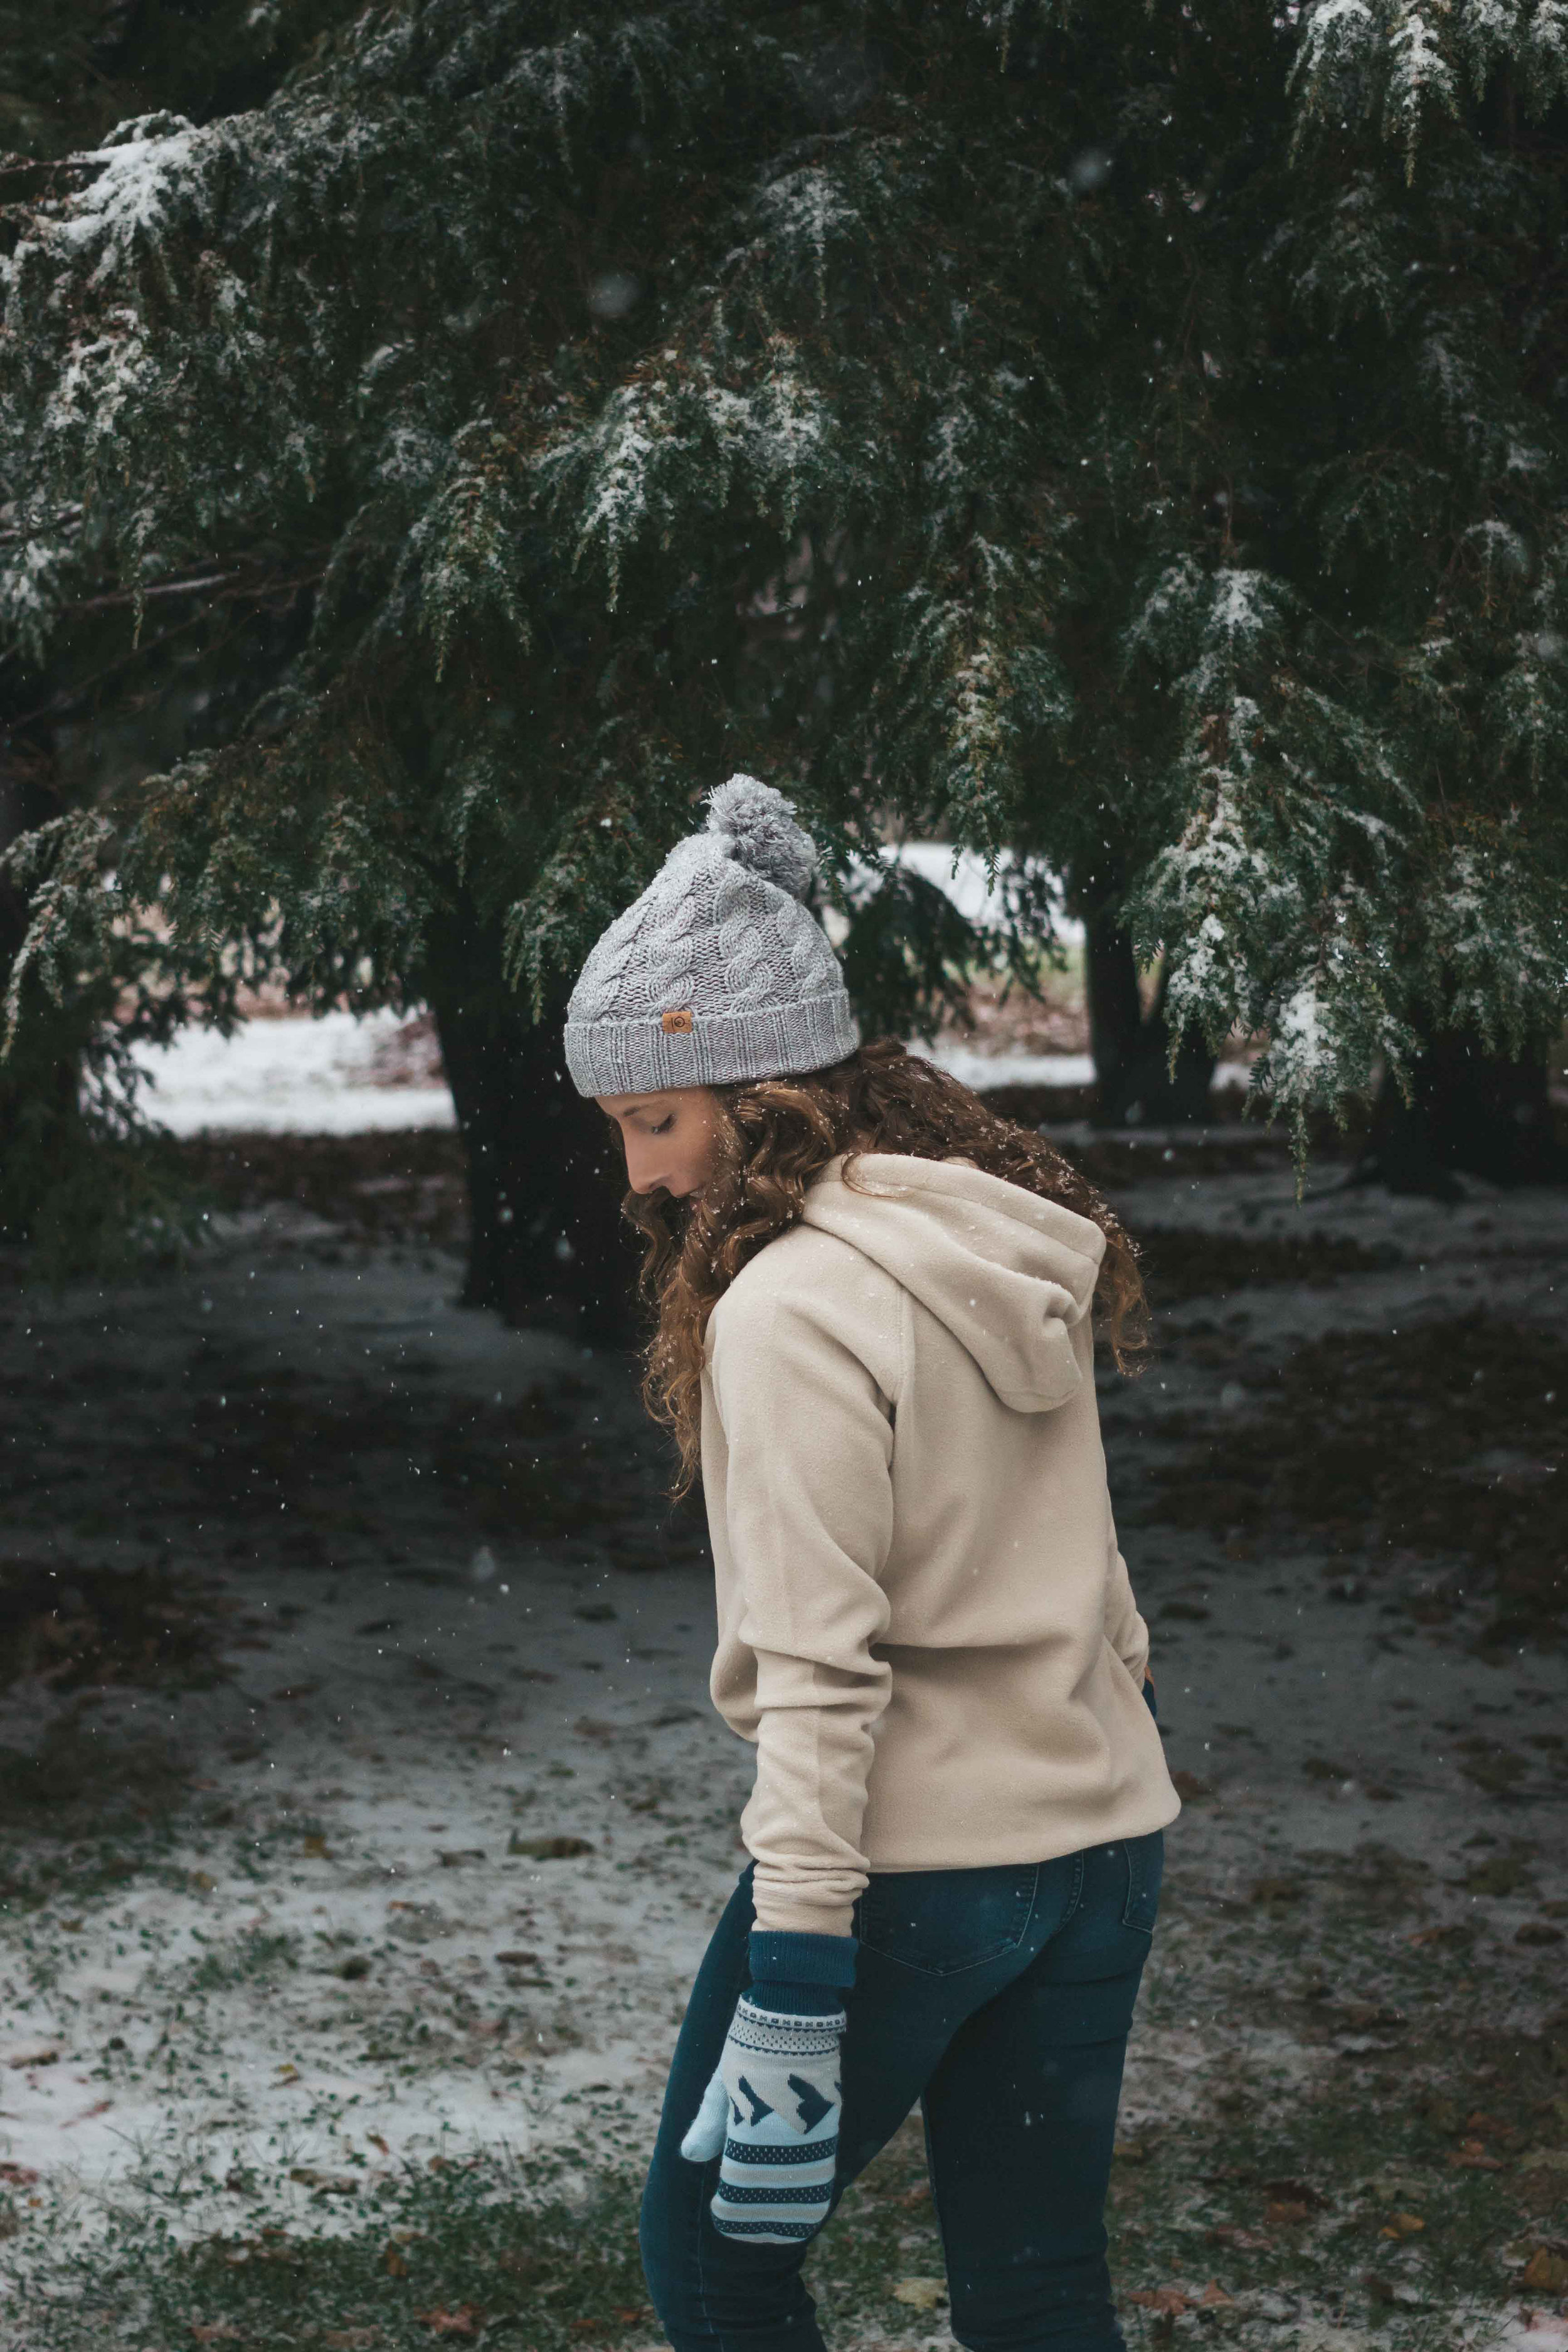 Get Outside This Holiday Season: Sustainable Outdoor Gear For Enjoying The Great Outdoors - The Well Essentials